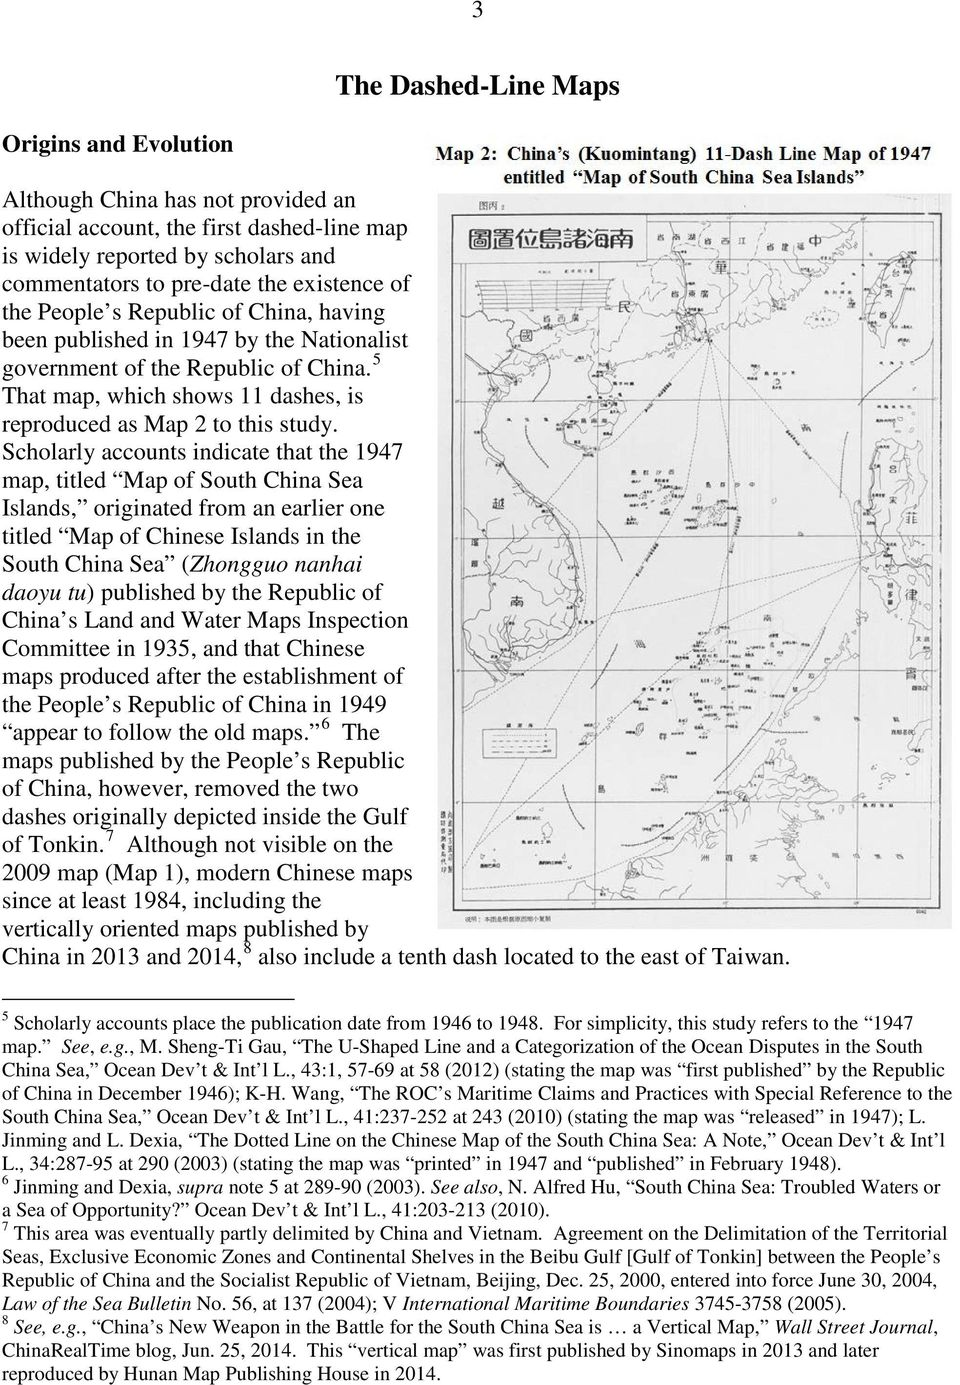 Scholarly accounts indicate that the 1947 map, titled Map of South China Sea Islands, originated from an earlier one titled Map of Chinese Islands in the South China Sea (Zhongguo nanhai daoyu tu)